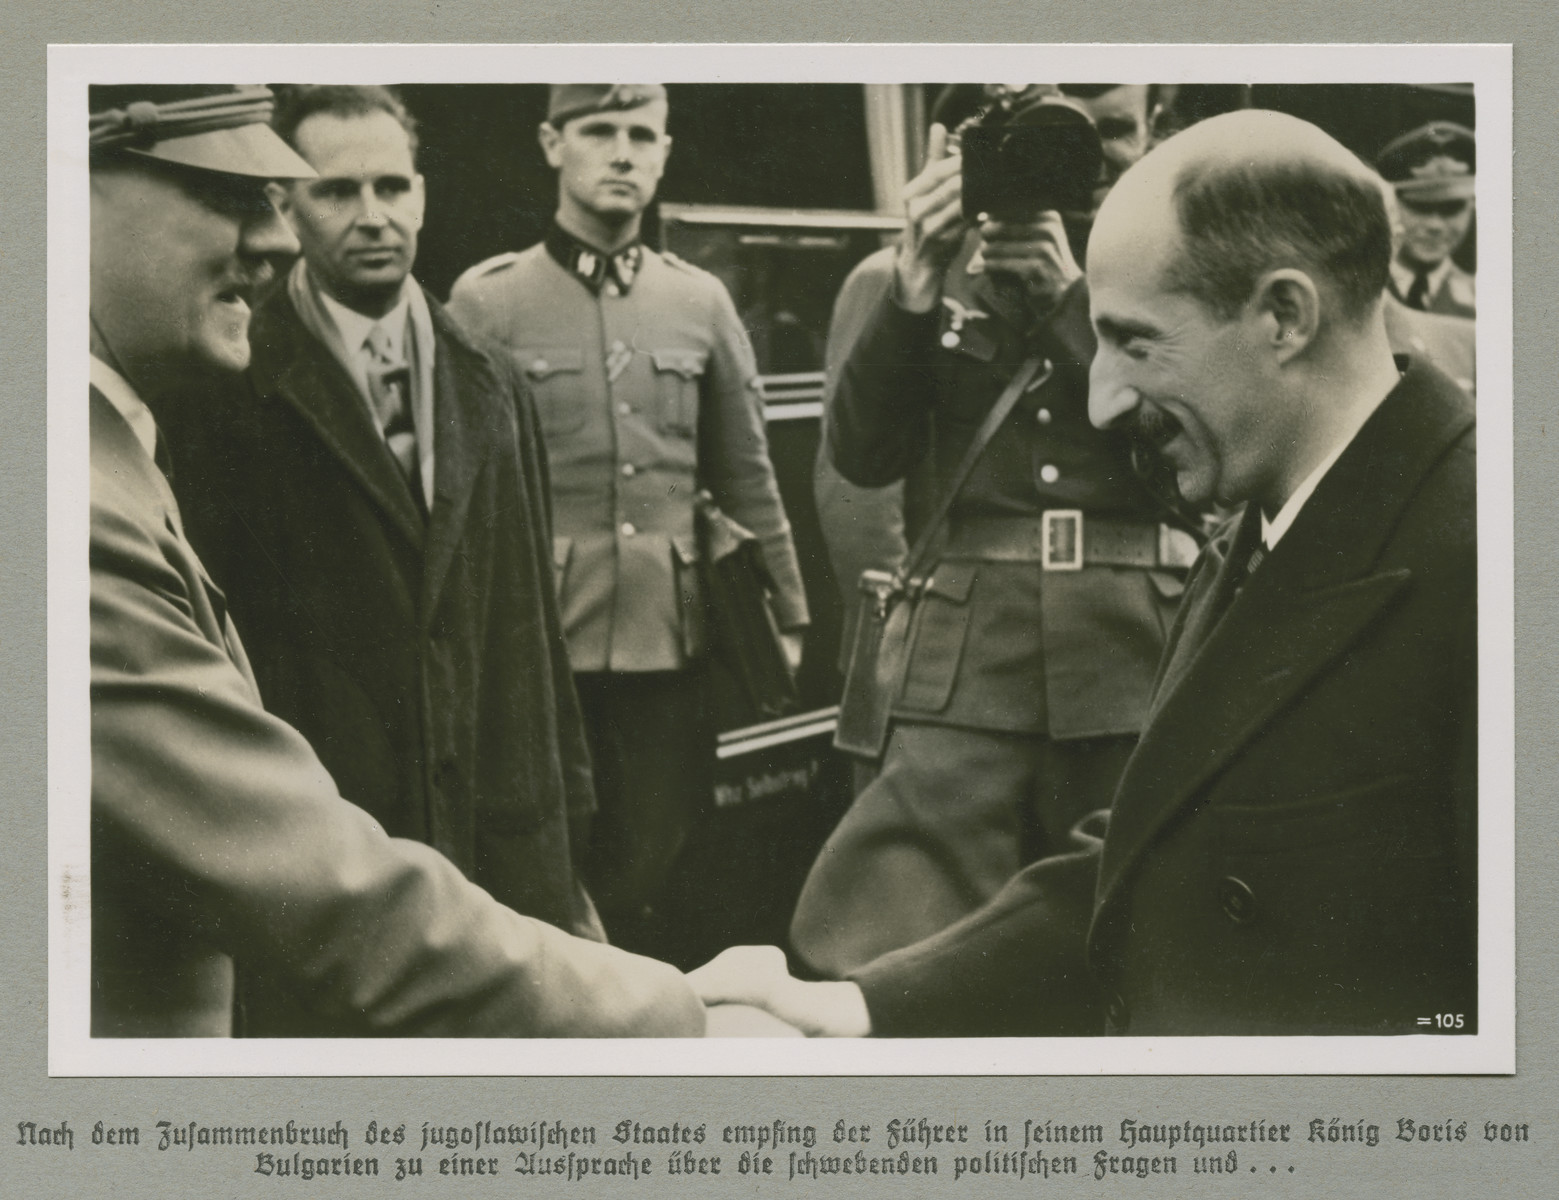 Adolf Hitler greets King Boris III of Bulgaria.   Original caption reads: The Führer received King Boris of Bulgaria at his headquarters following the collapse of the Yugoslavian state for discussion of pending political questions and...